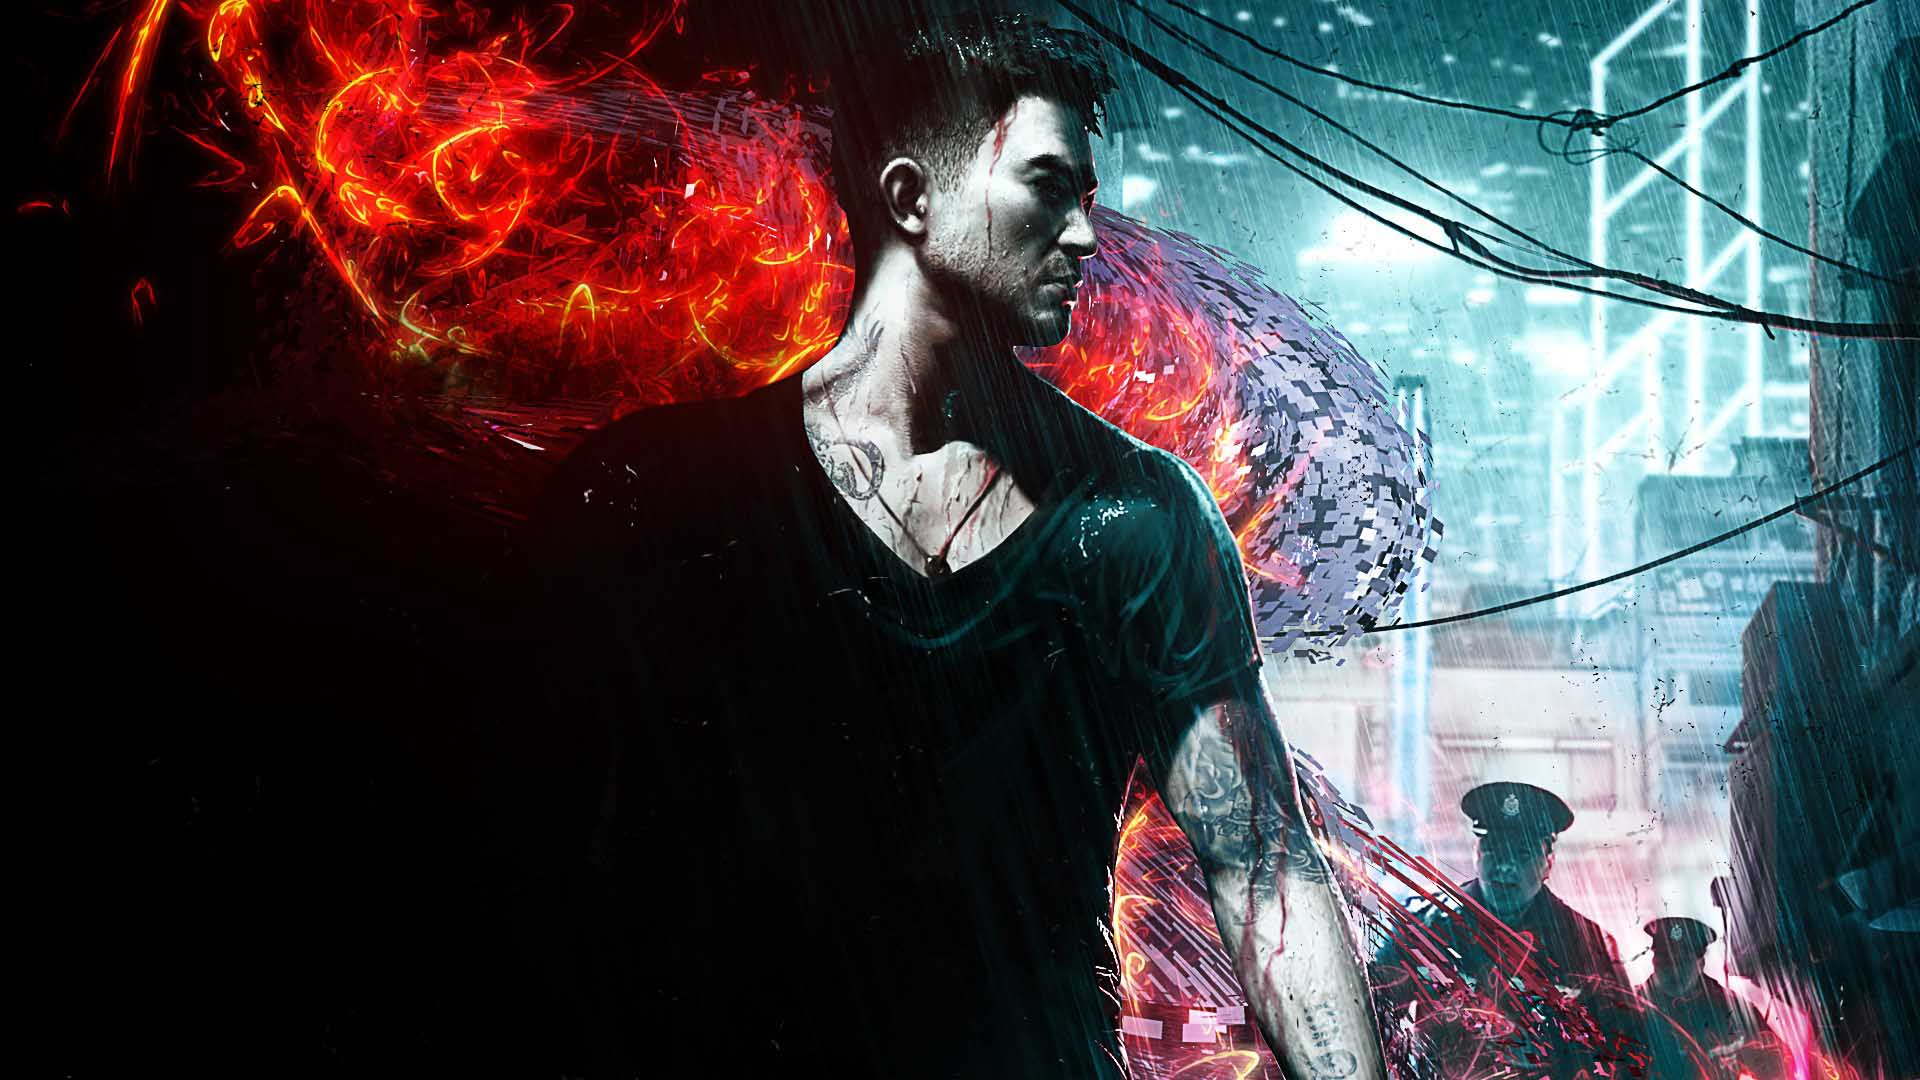 Games Sleeping Dogs Moving Background Wallpaper 1920x1080 1920x1080